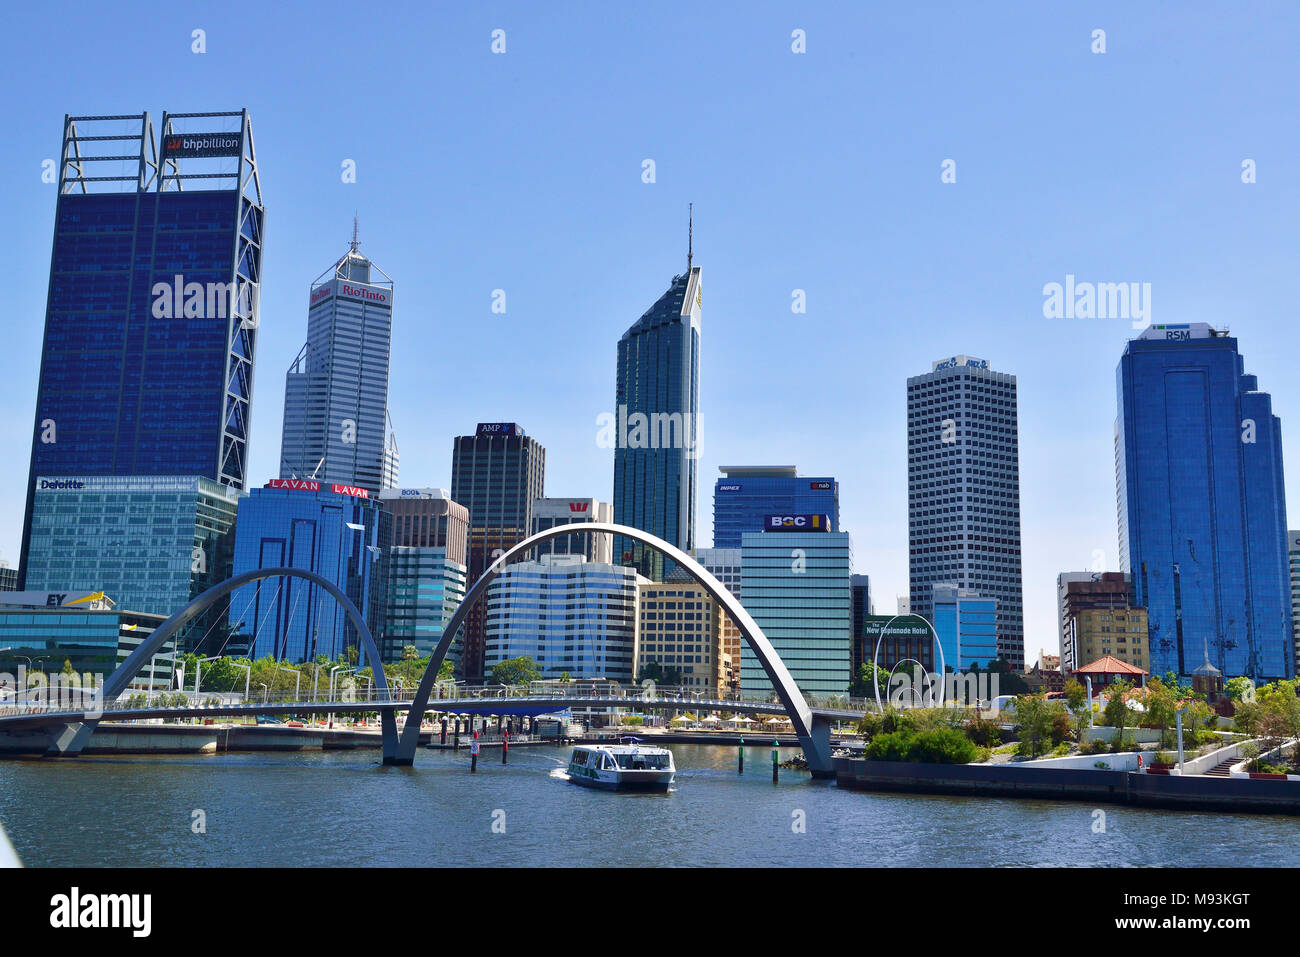 Elizabeth Quay Perth with business area behind and arcade of iconic Elizabeth Quay pedestrian bridge in the foreground - Stock Image